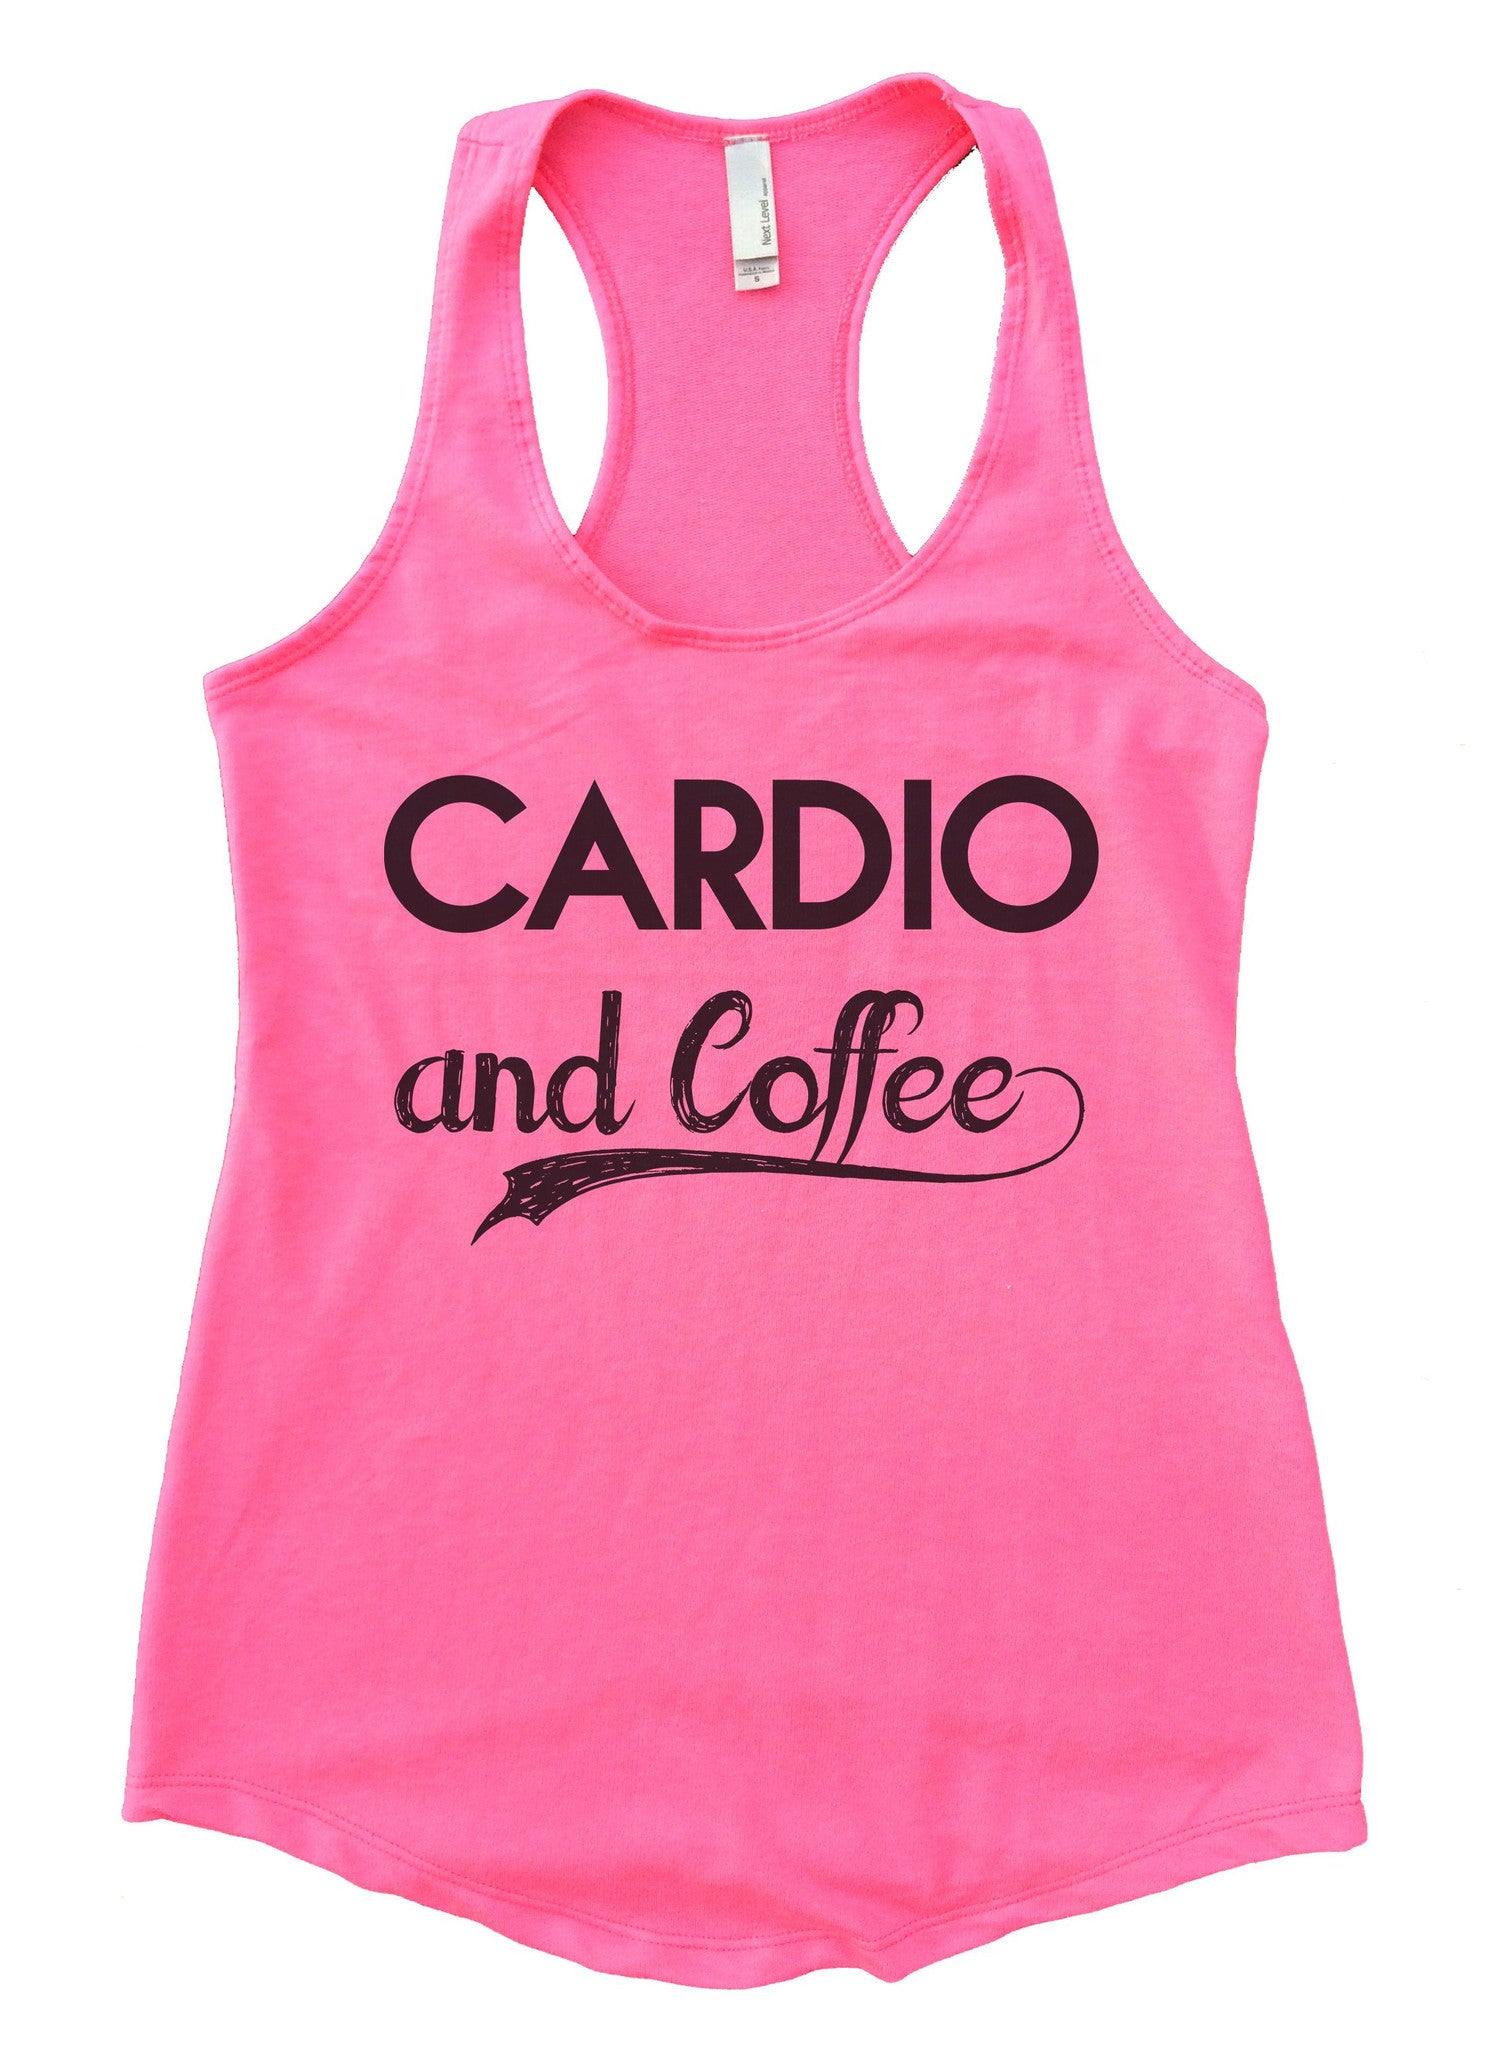 Cardio And Coffee Womens Workout Tank Top F797 - Funny Shirts Tank Tops Burnouts and Triblends  - 3